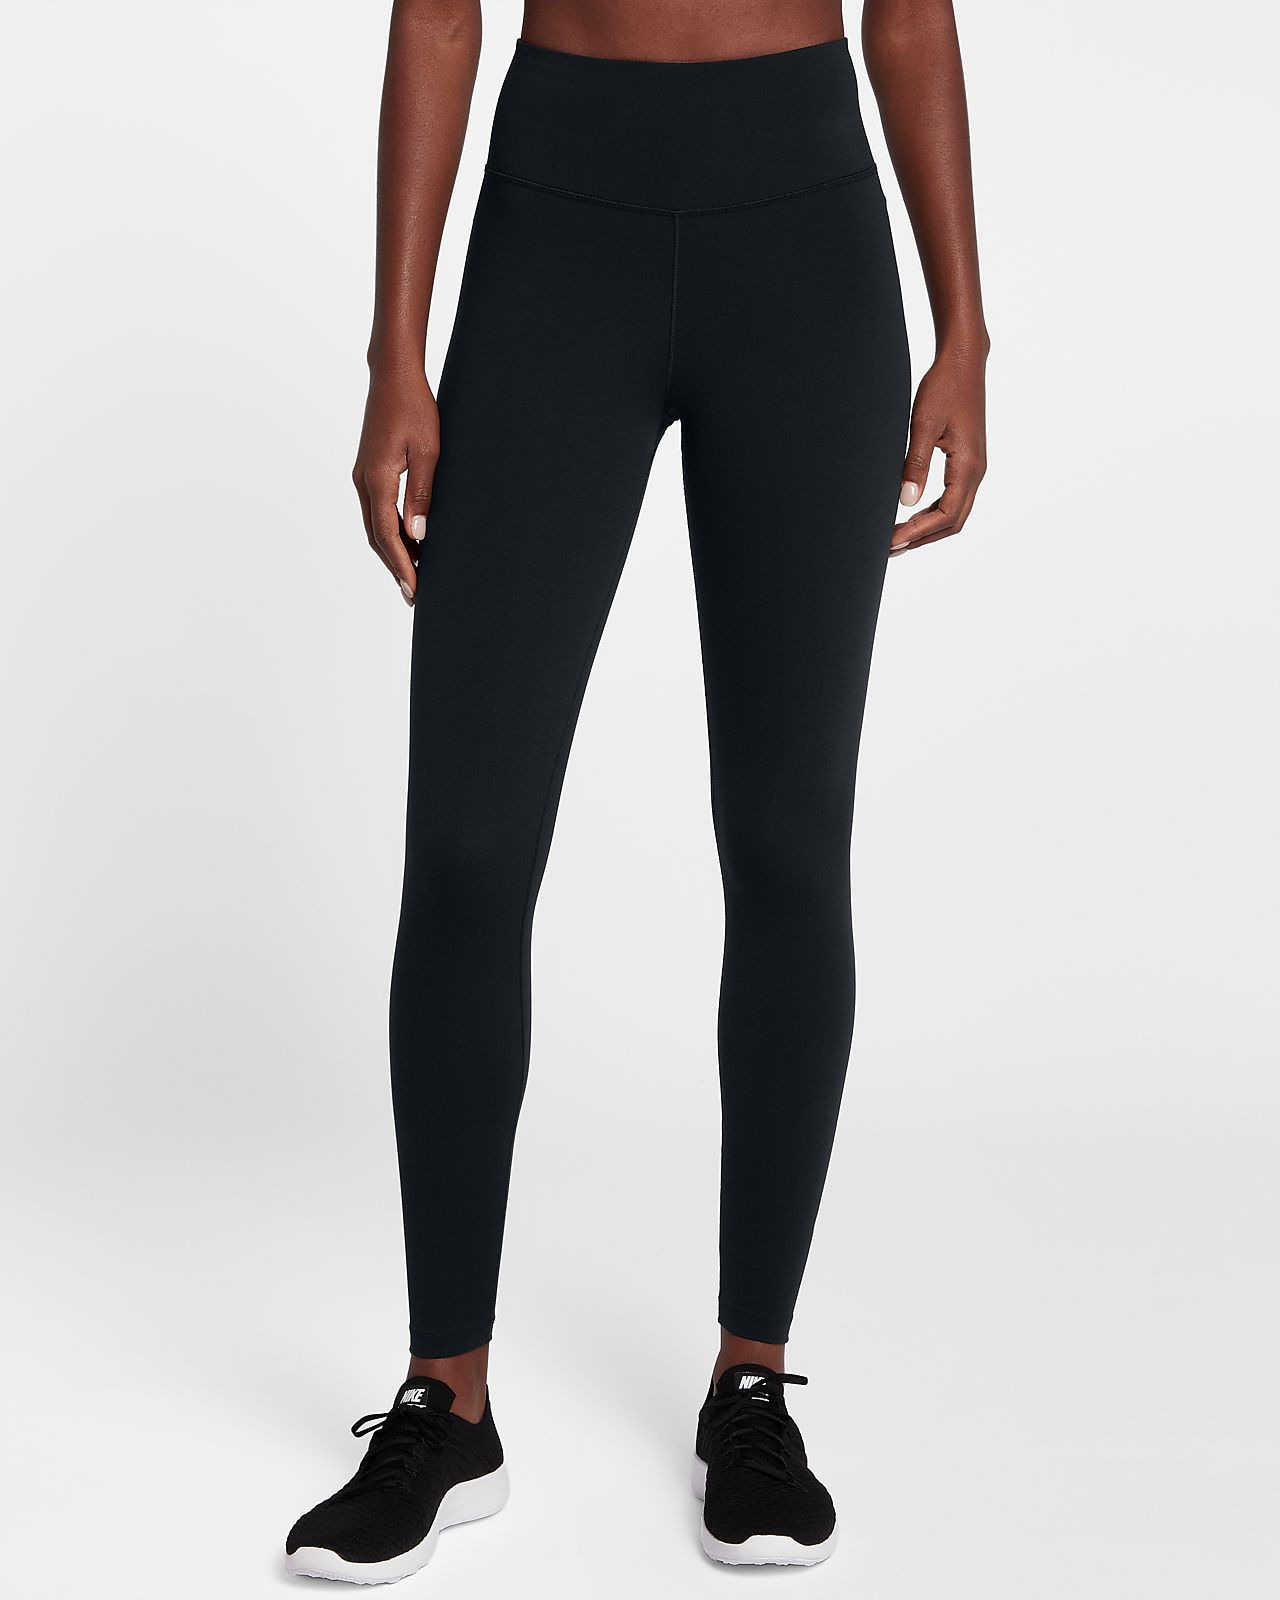 Nike Sculpt Lux Women's High-Waist Training Tights